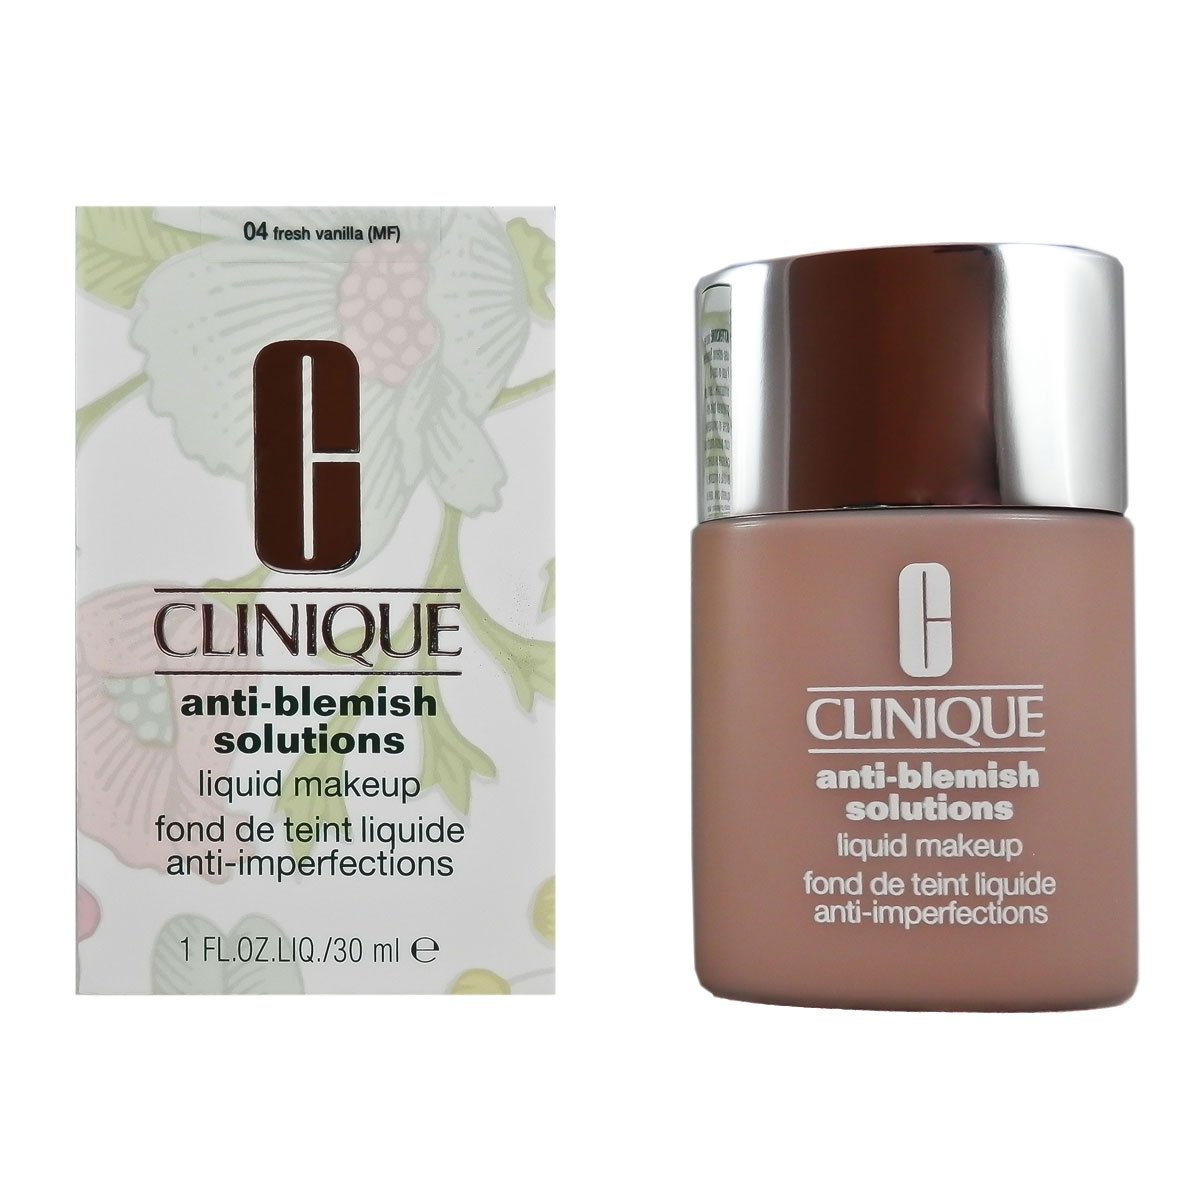 Clinique acne solutions liquid makeup 04 for Where is clinique made